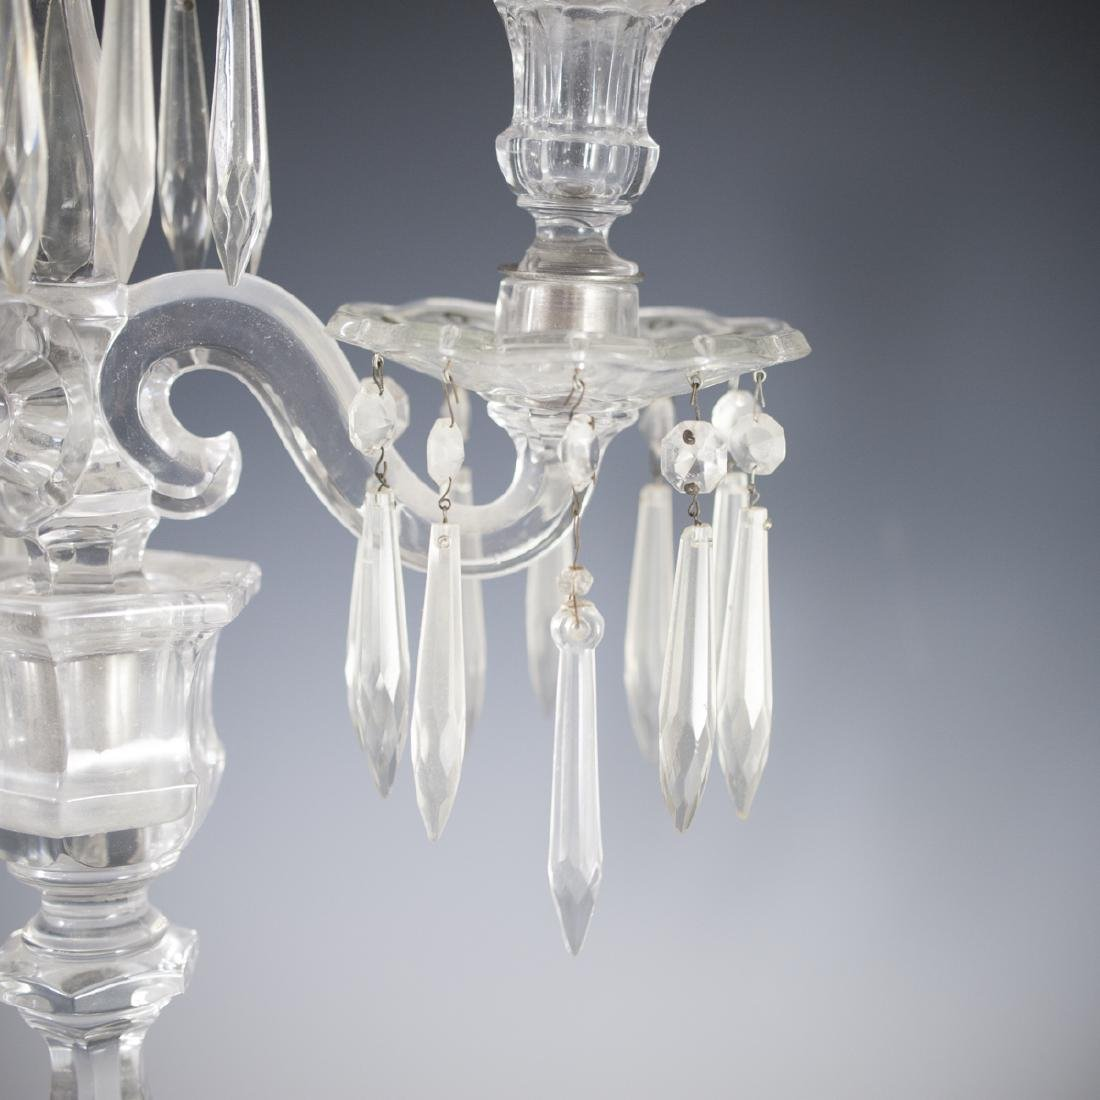 Antique Possibly Baccarat Crystal Candelabra - 4